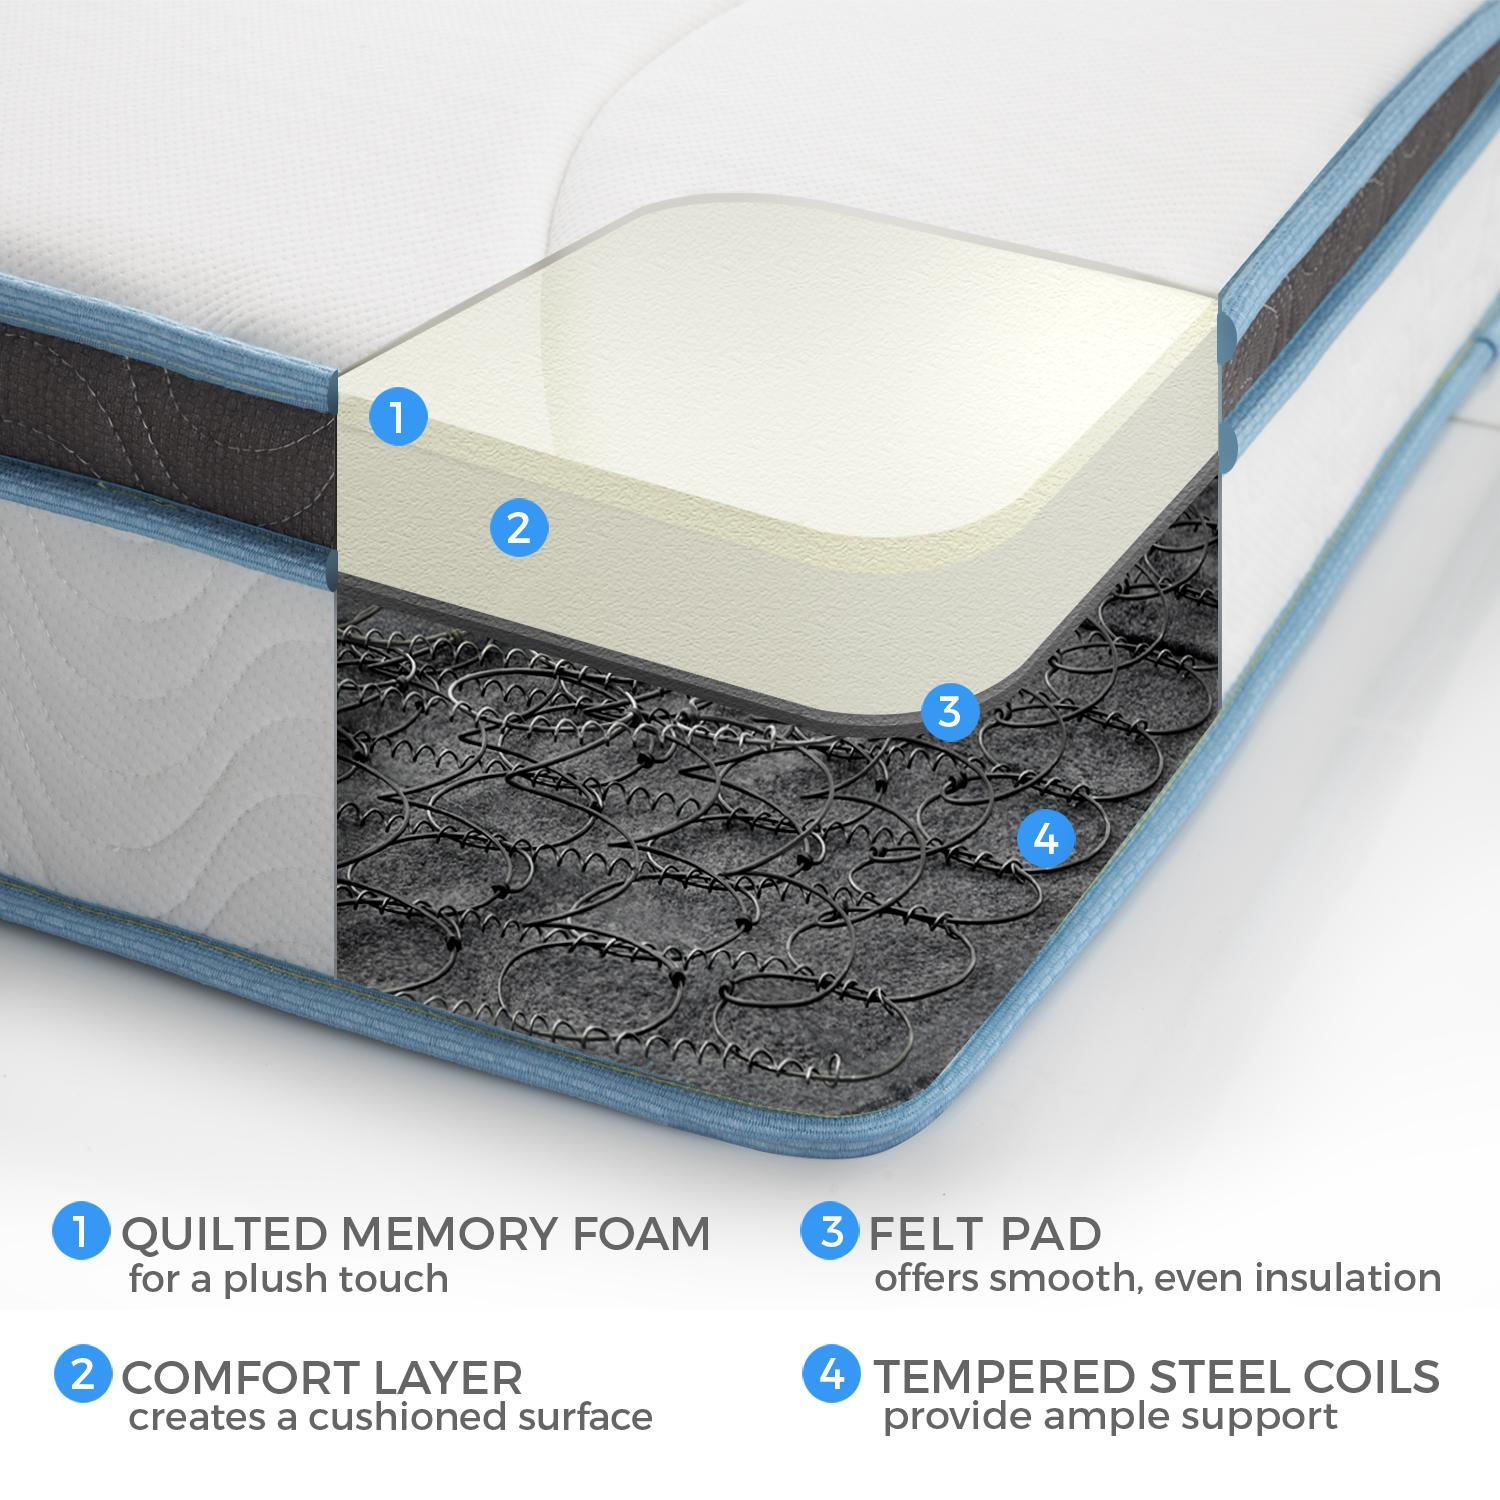 A look inside the Linenspa mattress